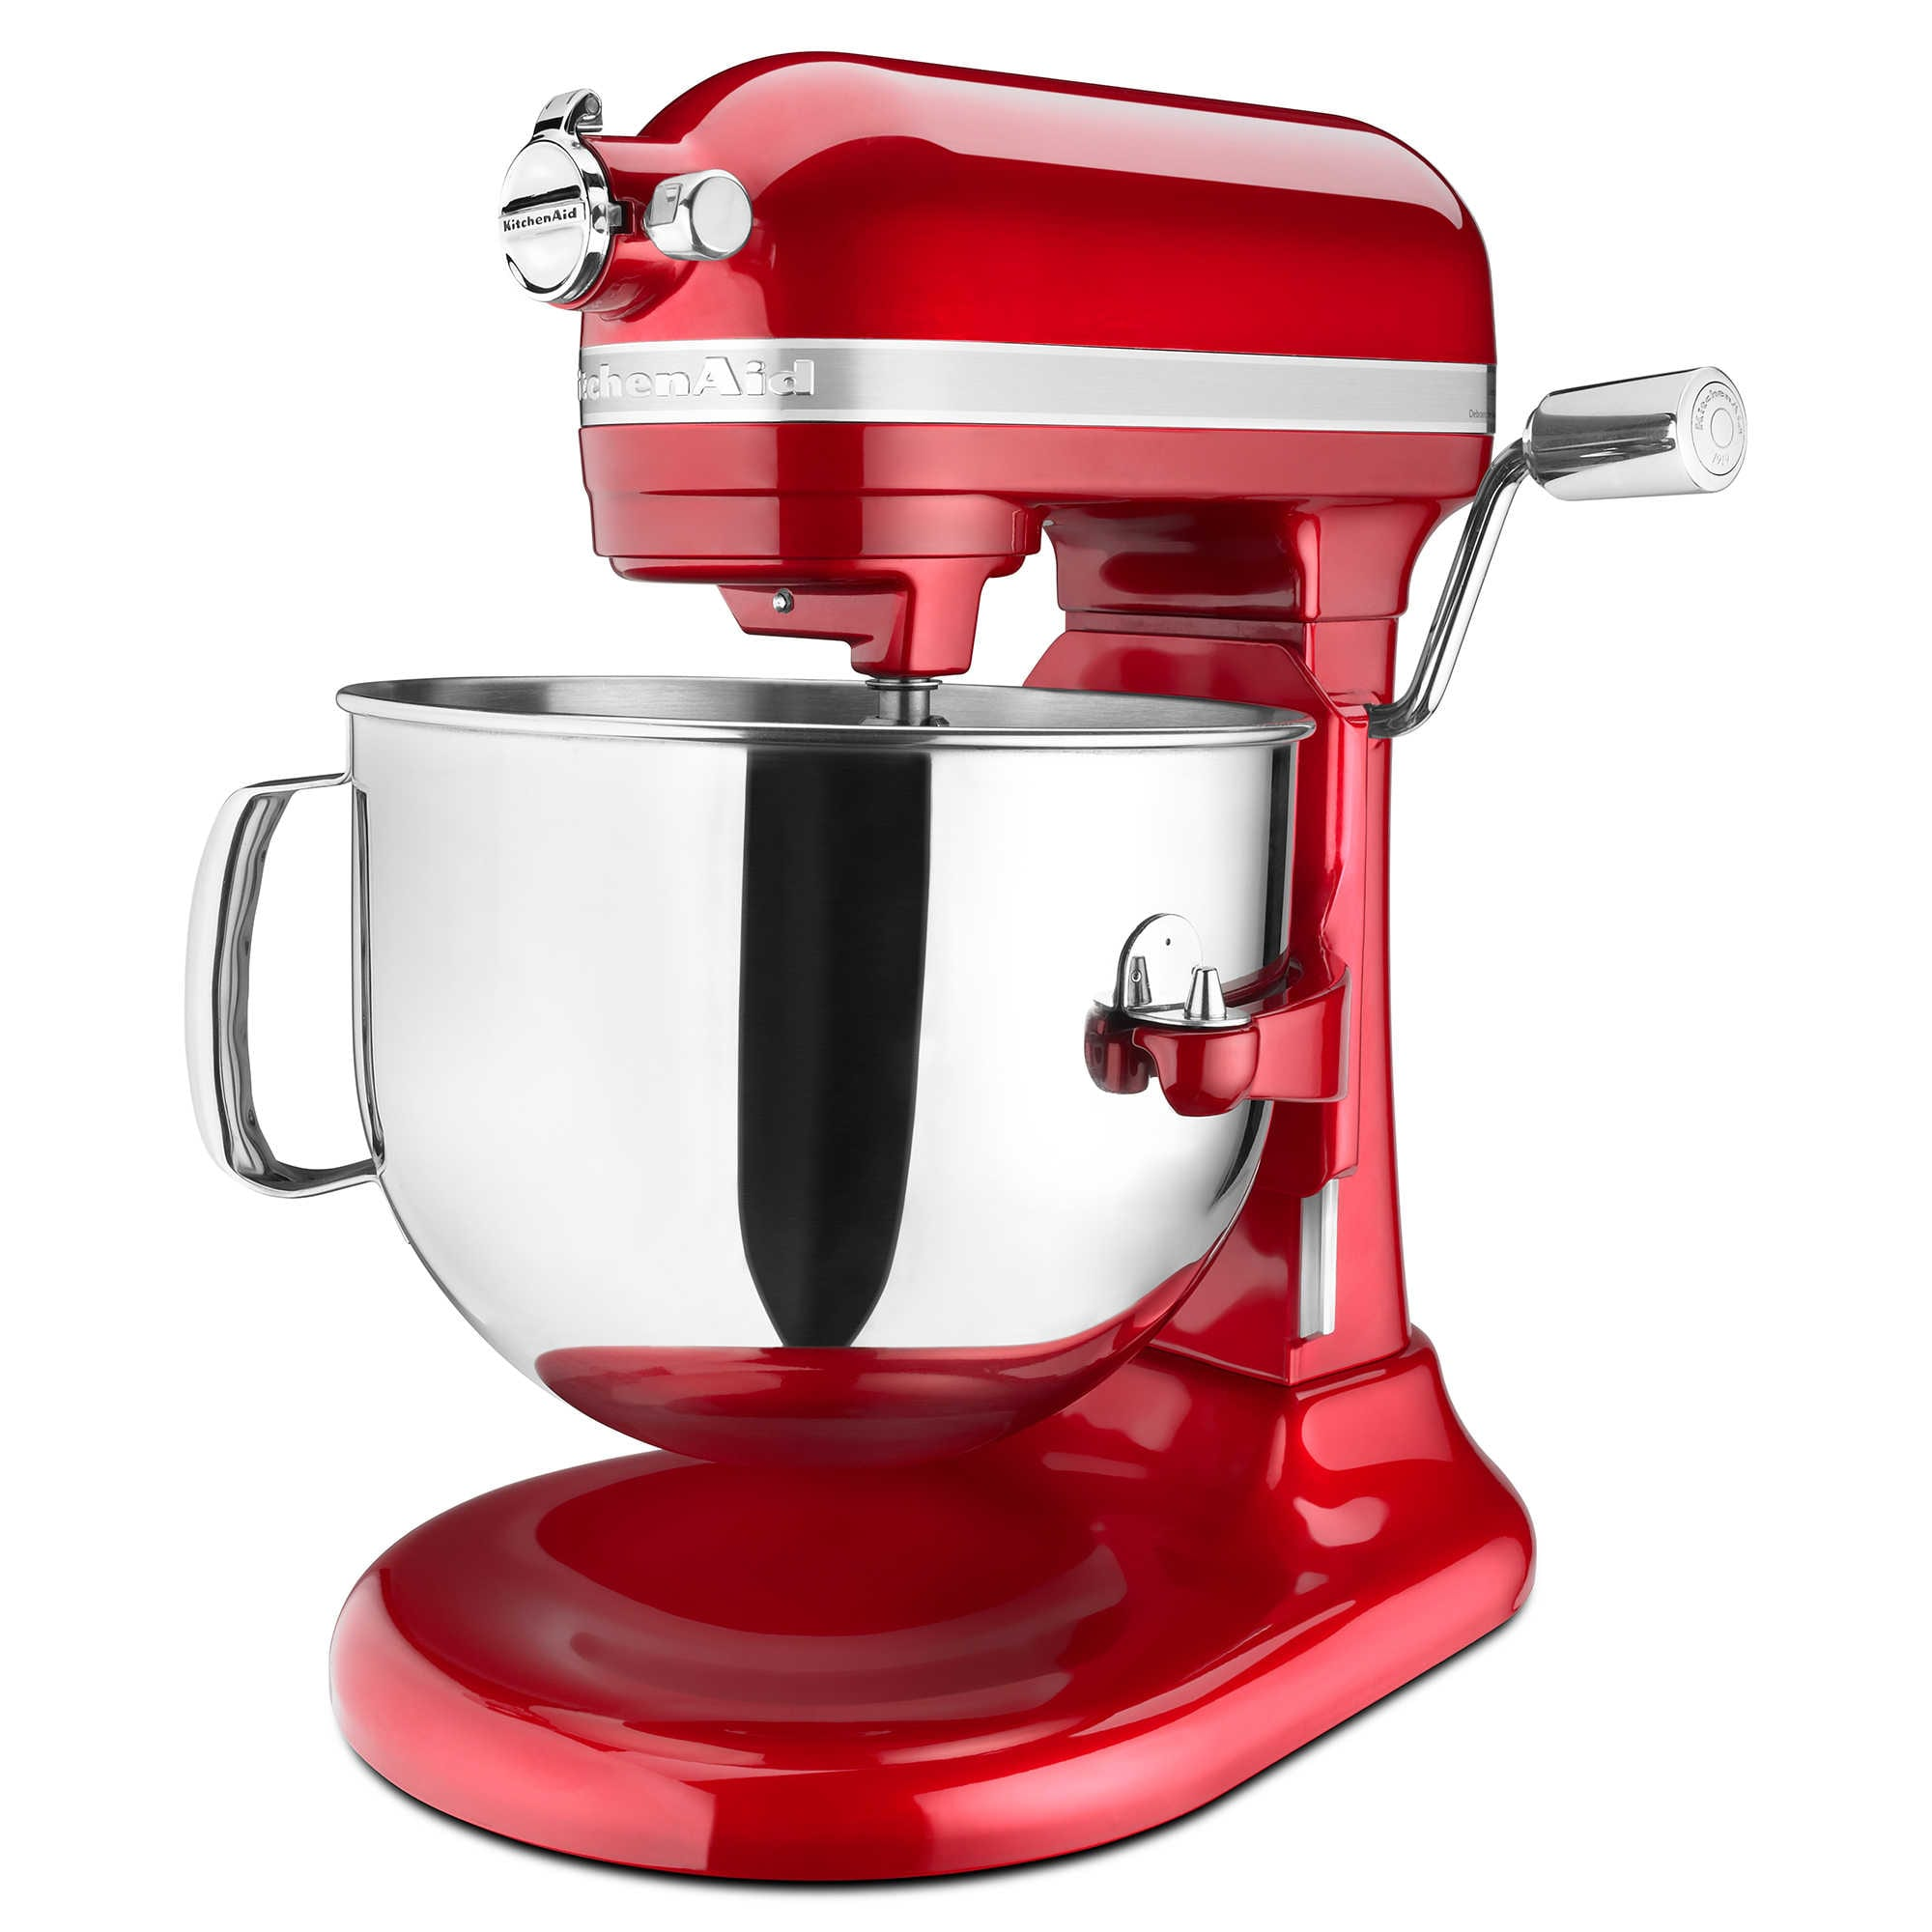 7qt KitchenAid Pro Line Bowl-Lift Stand Mixer - Slickdeals.net